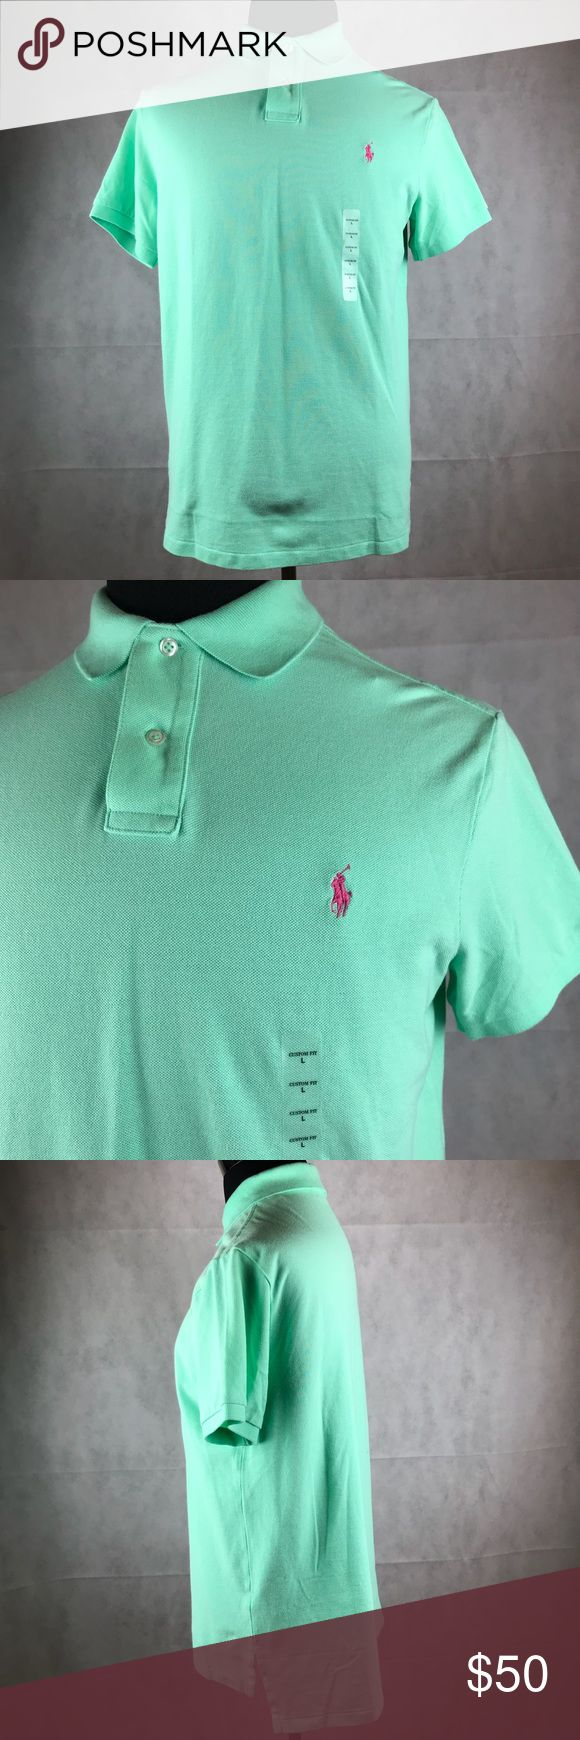 """POLO Ralph Lauren Custom Fit Polo Shirt Lime Green POLO Ralph Lauren Men's Custom Fit Polo Shirt L Lime Green Short Sleeve Pink Pony  Condition: New With Tag  Measurements Armpit to Armpit: 21 1/2"""" Sleeve Length: 8"""" Length: 27 1/2"""" Polo by Ralph Lauren Shirts Polos"""